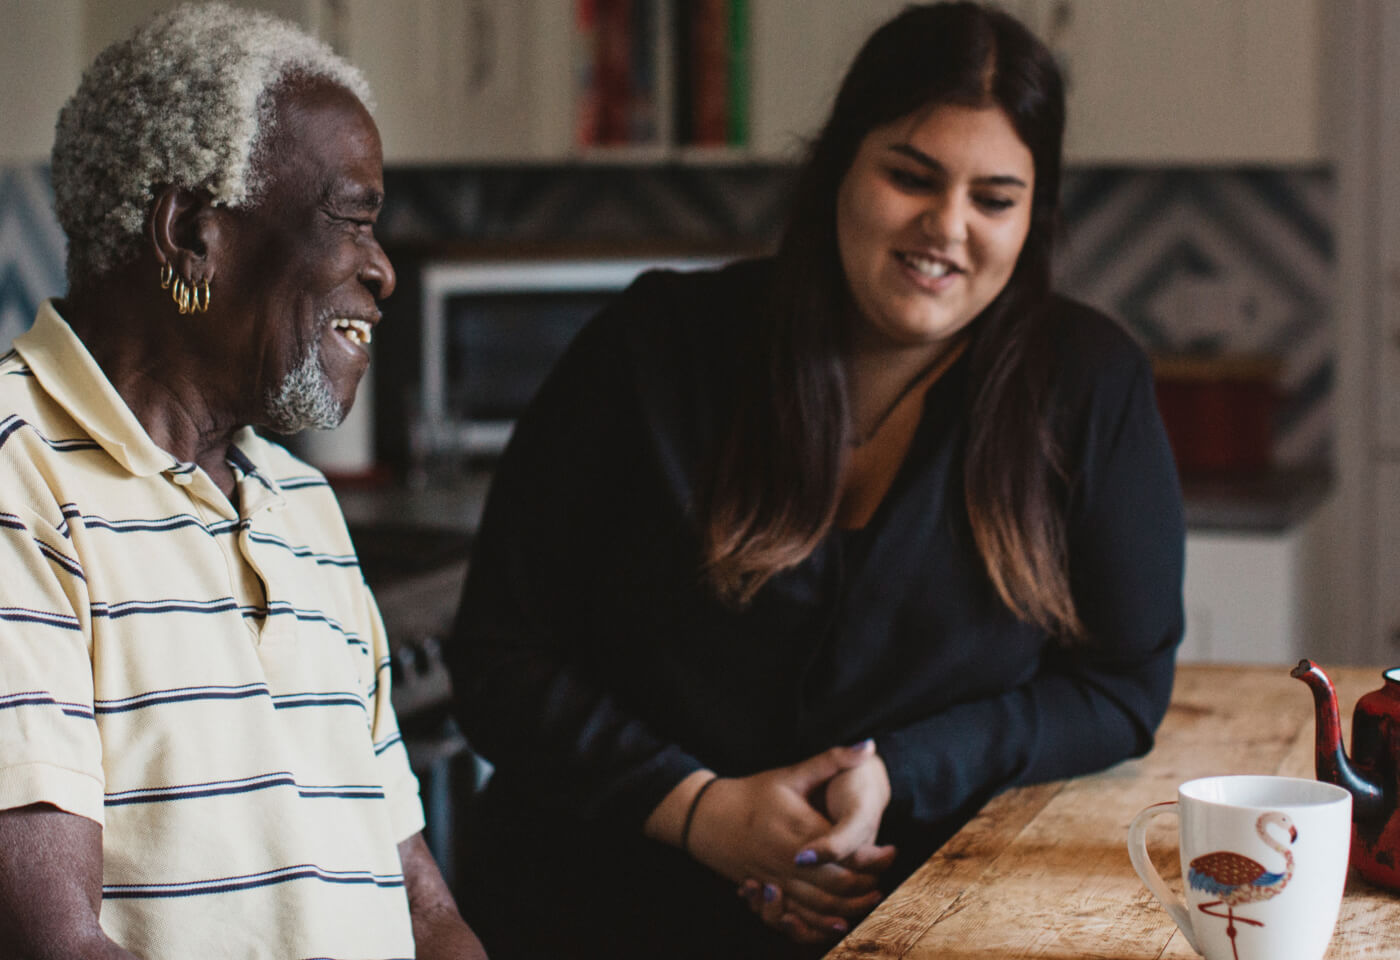 Elderly man with earrings sits at wooden table with a carer smiling